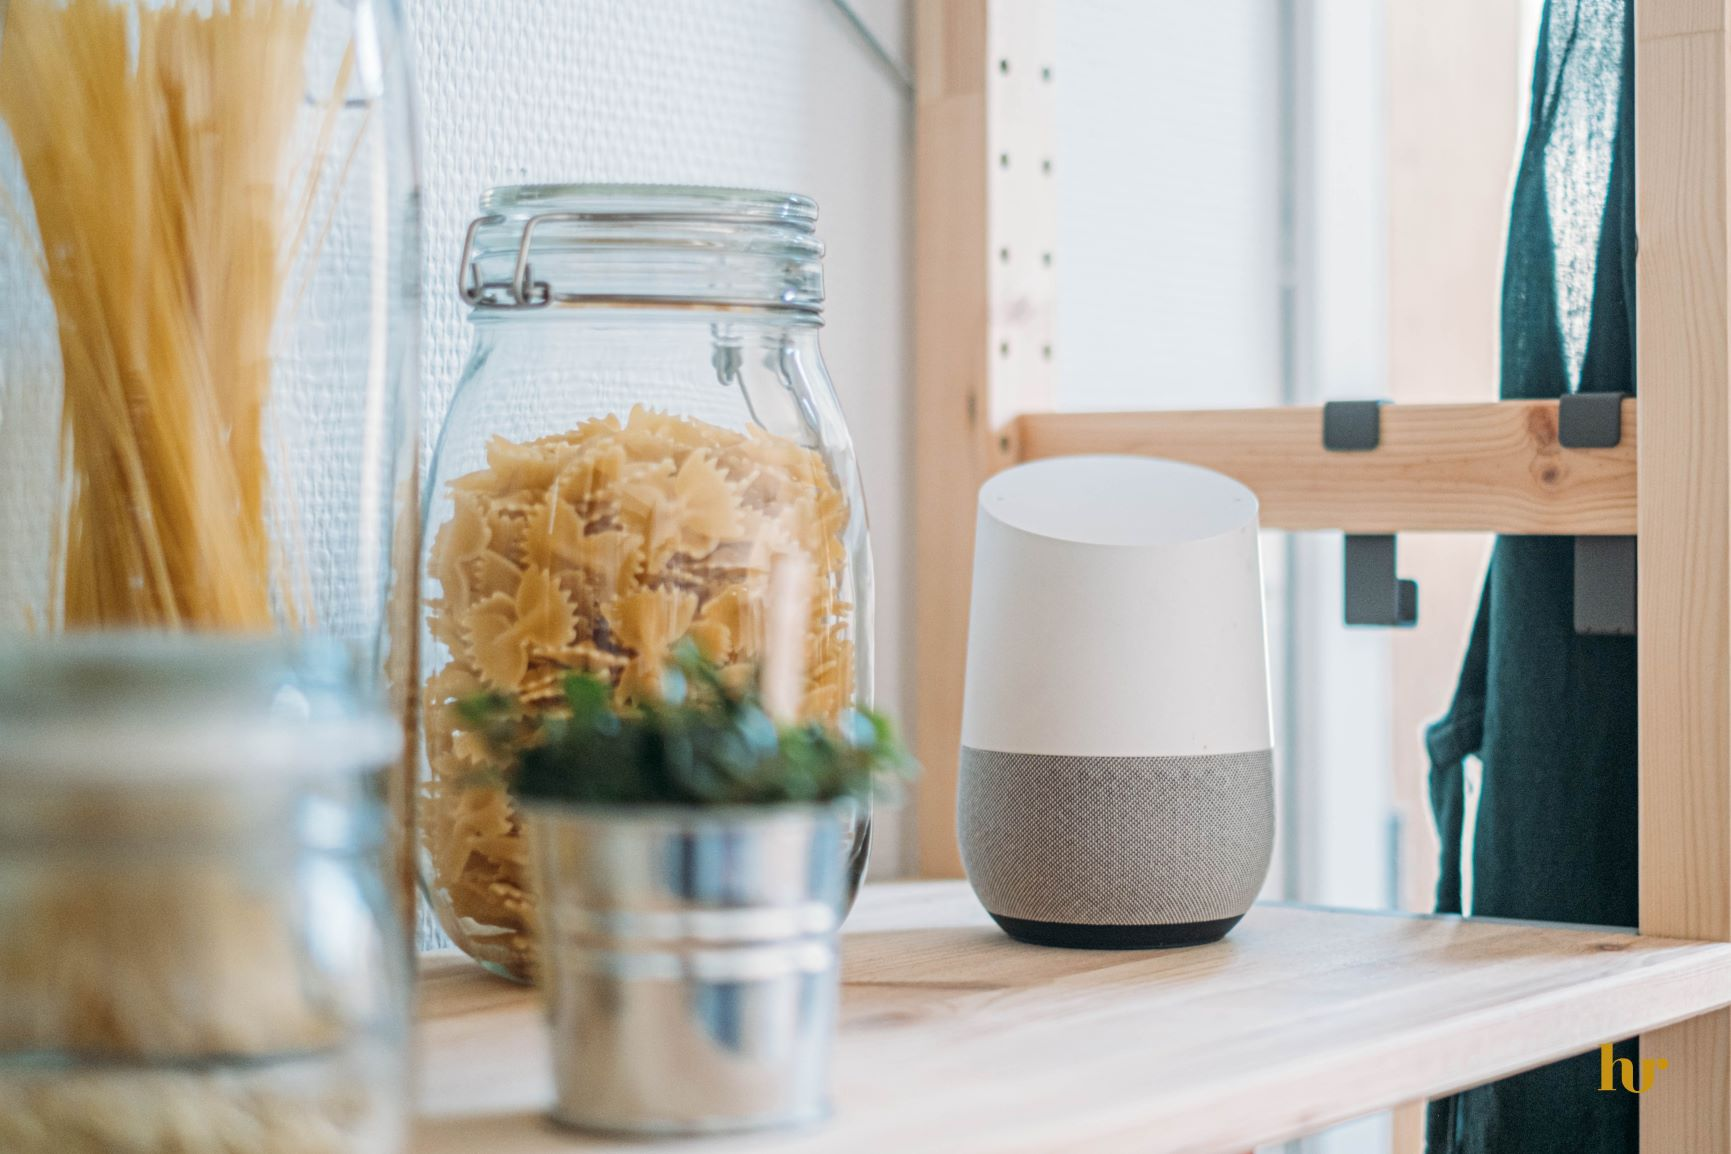 Kitchen with Smart Device on Shelf